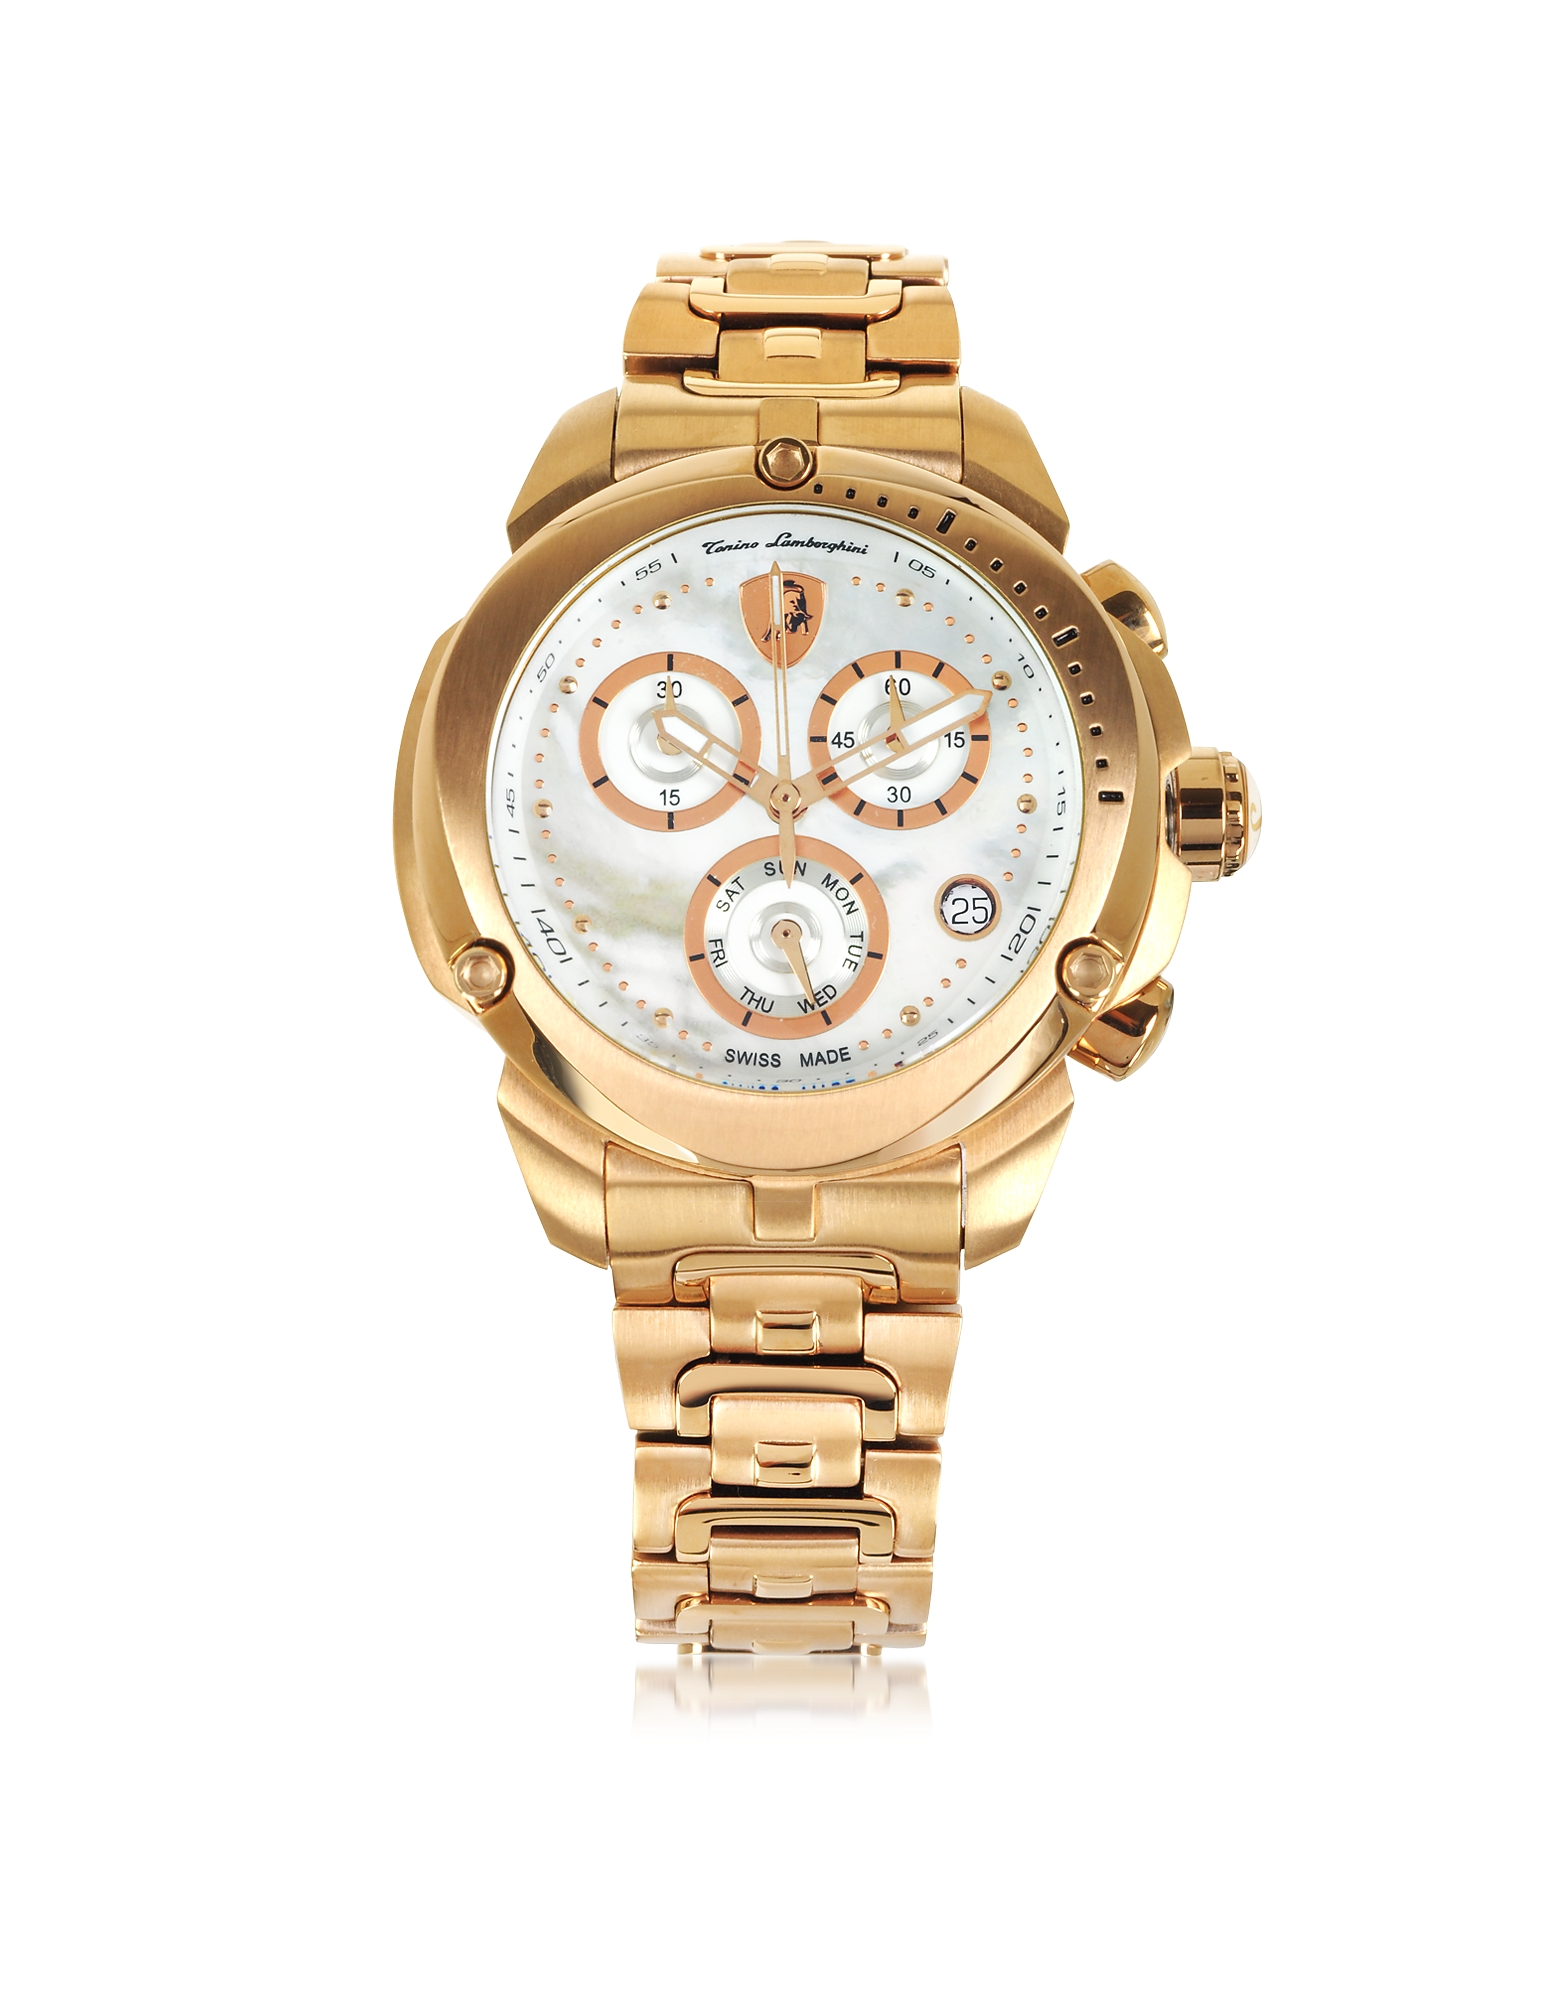 Tonino Lamborghini Women's Watches, Shield Lady Rose Gold Tone Stainless Steel Chronograph Watch